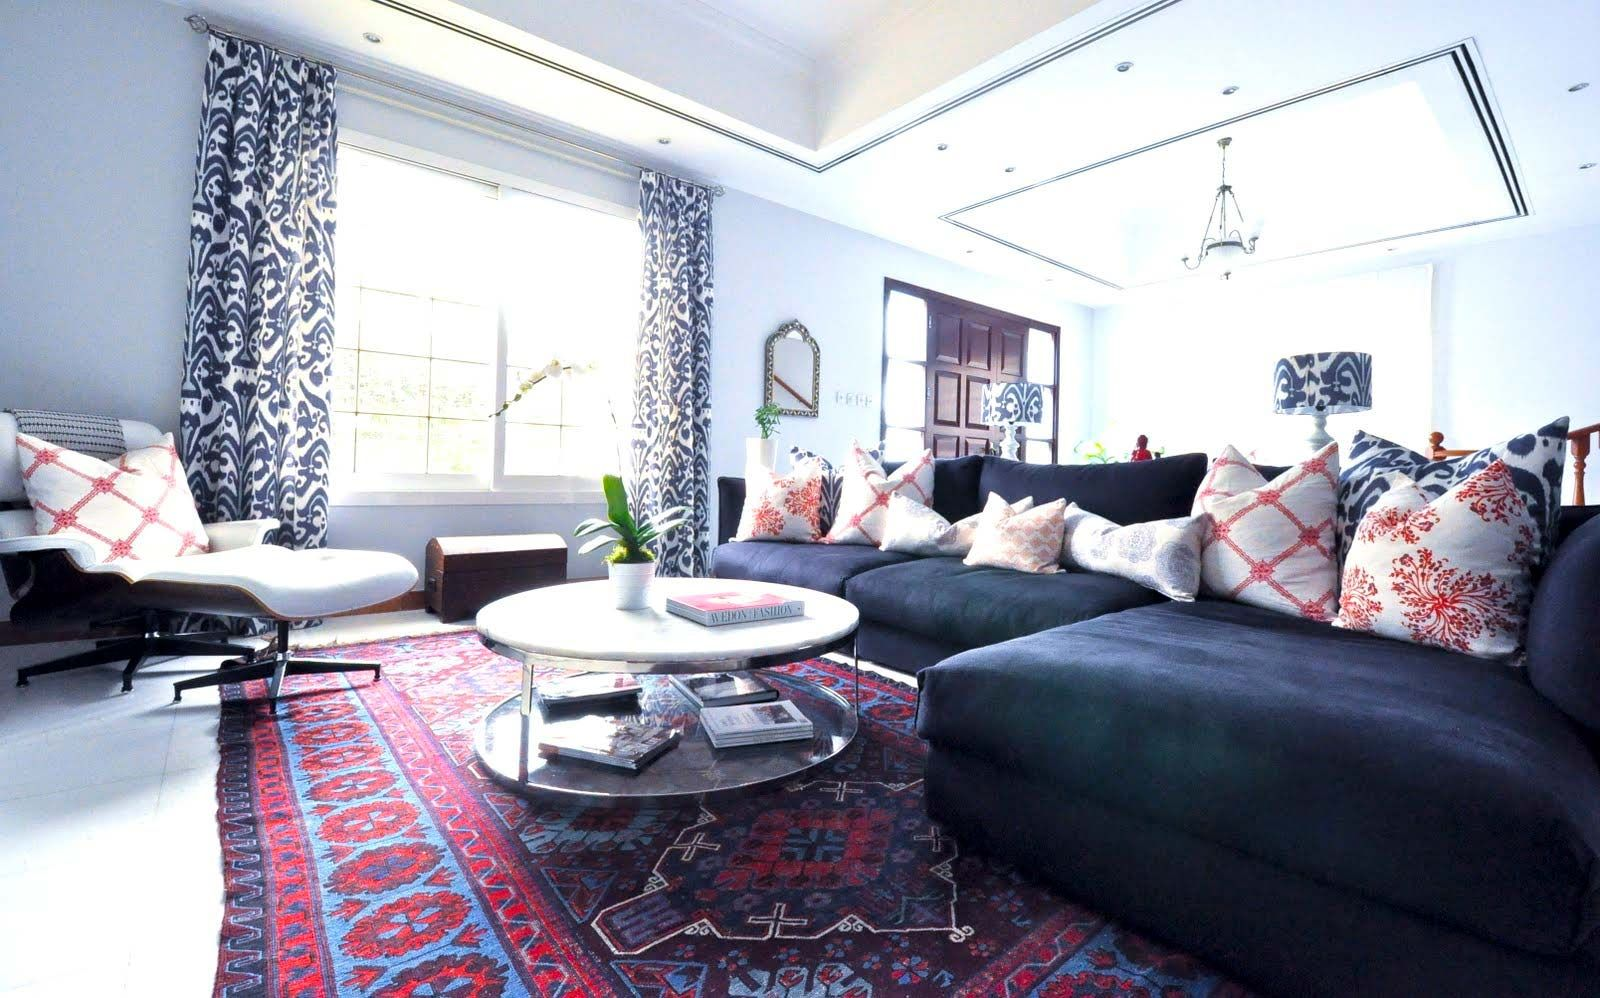 Modern Room With Persian Rug Google Search Rugs In Living Room Burgundy Living Room Living Room Designs #oriental #rug #in #living #room